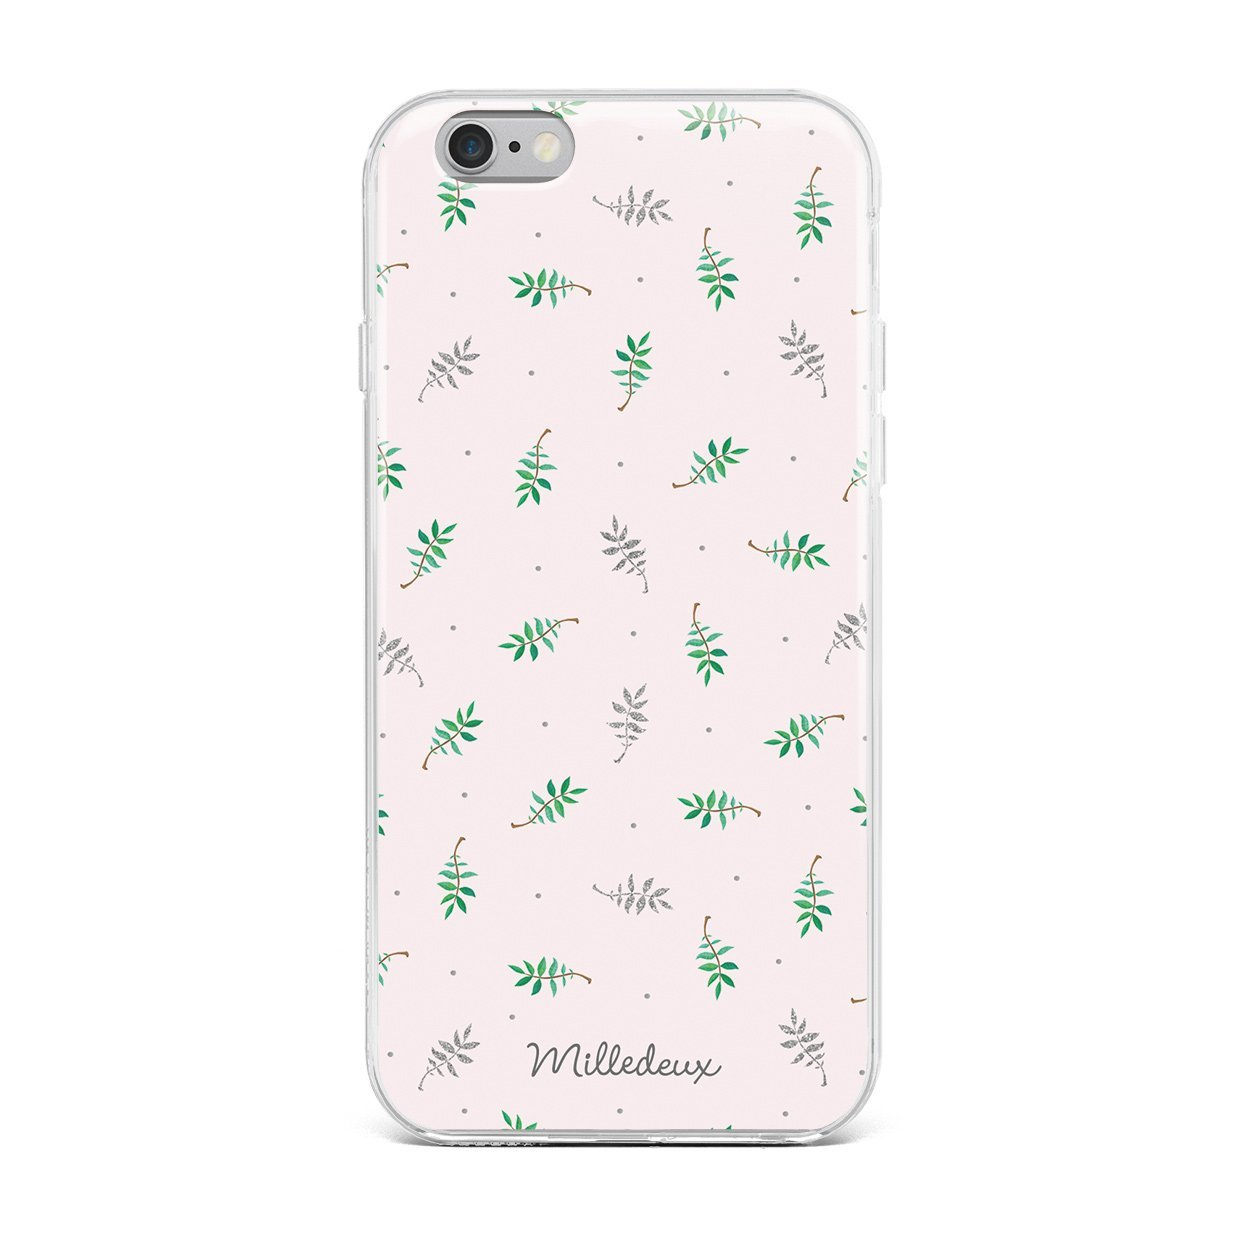 Milledeux Iphone Cover 6 6s 7 8 Plus Glitter Pattern